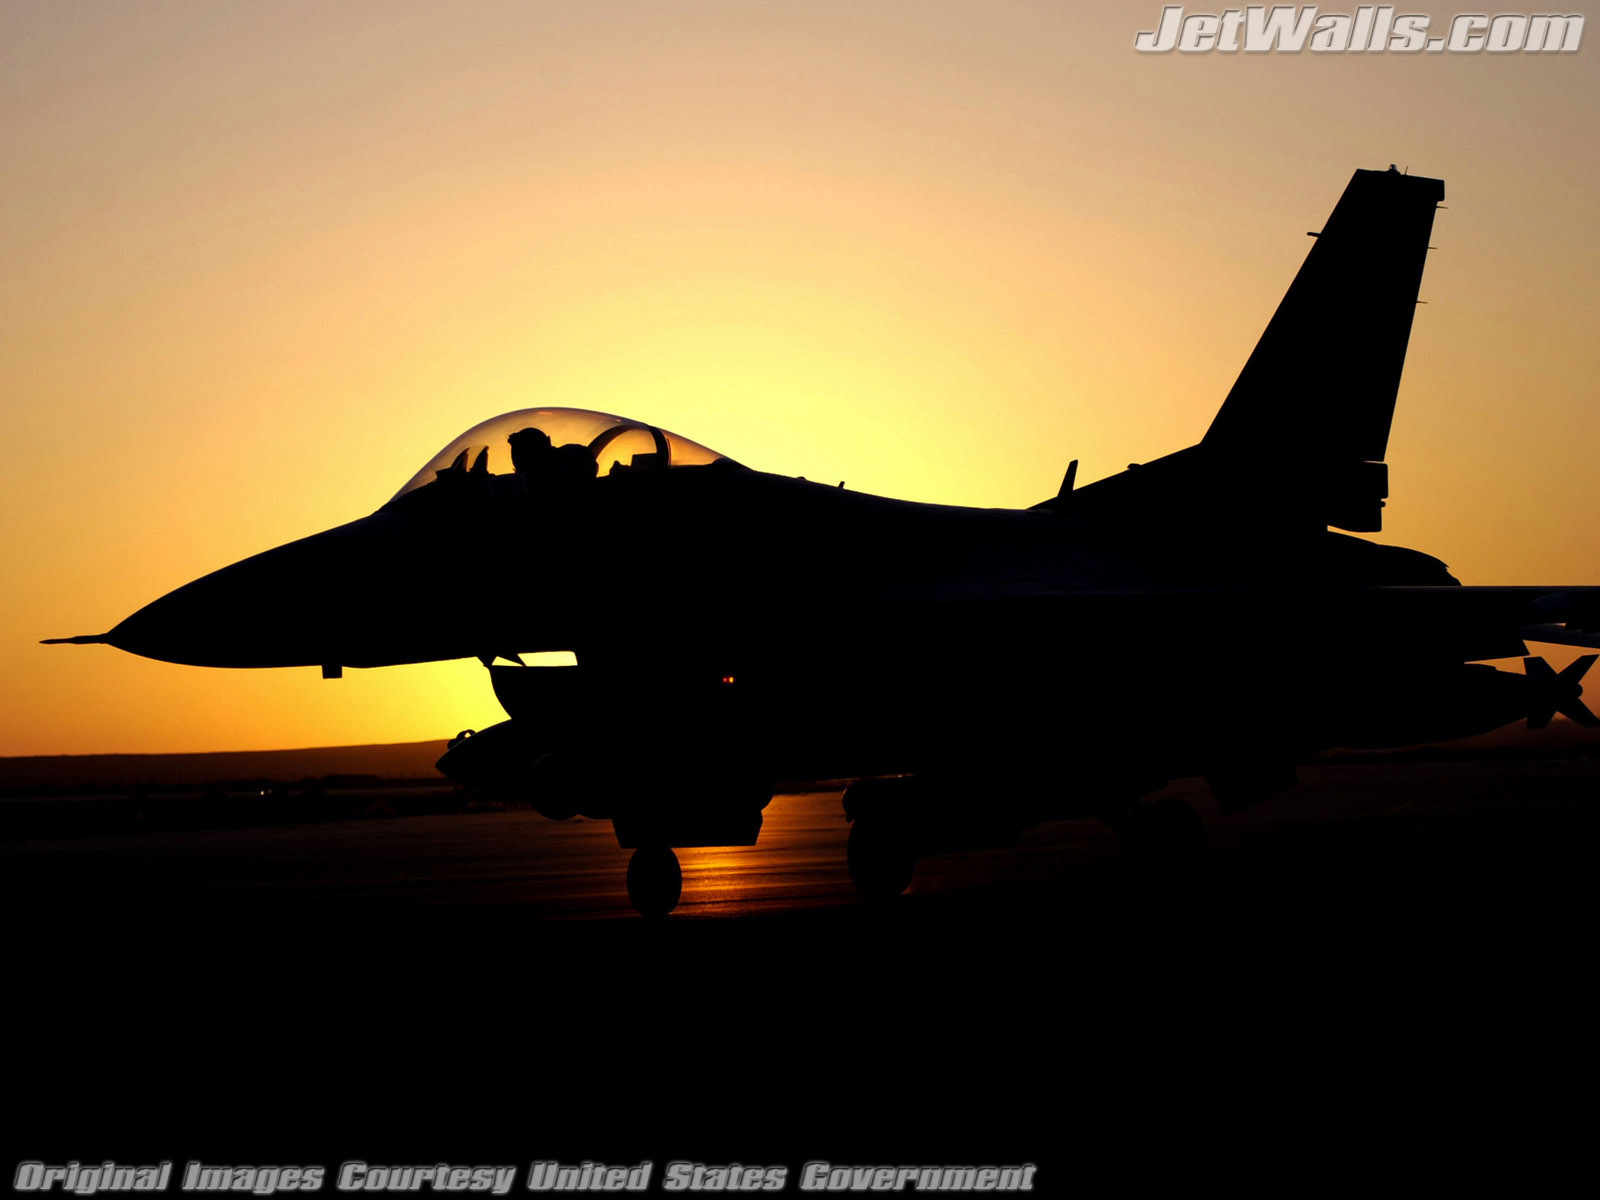 """F-16 Fighting Falcon"" - Wallpaper No. 93 of 101. Right click for saving options."